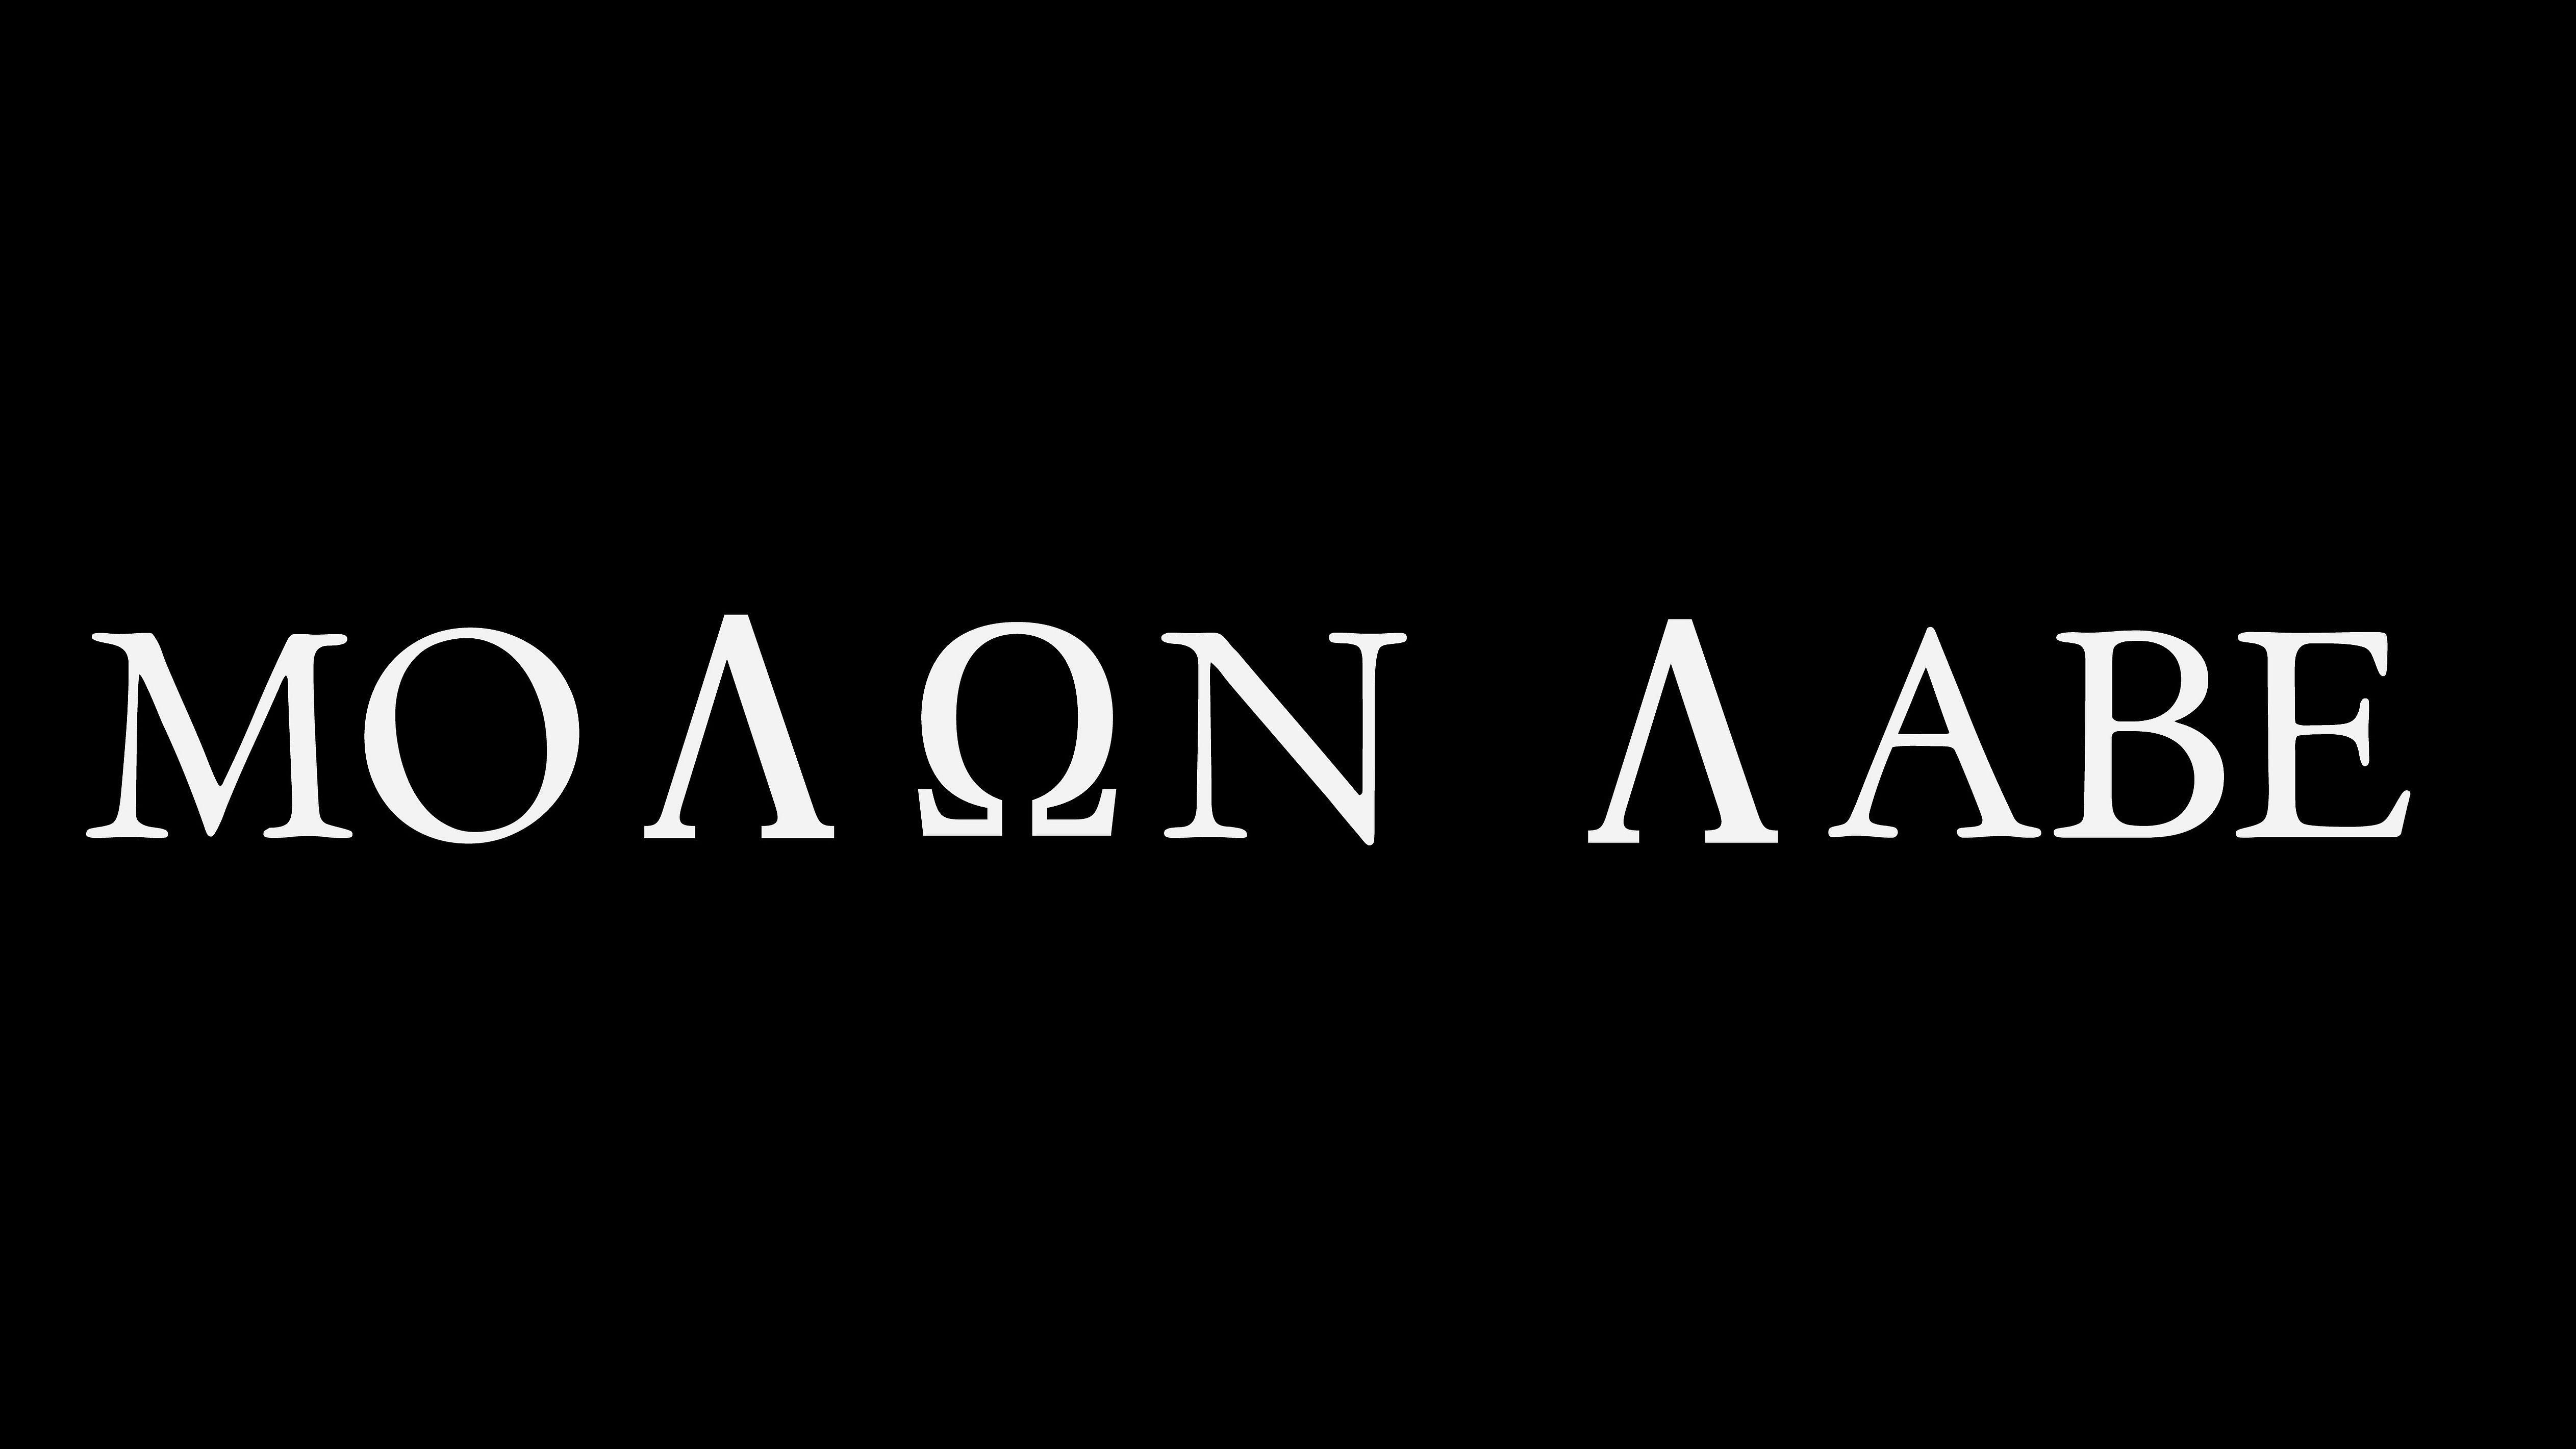 7 Molon Labe Hd Wallpapers Backgrounds Wallpaper Abyss Molon